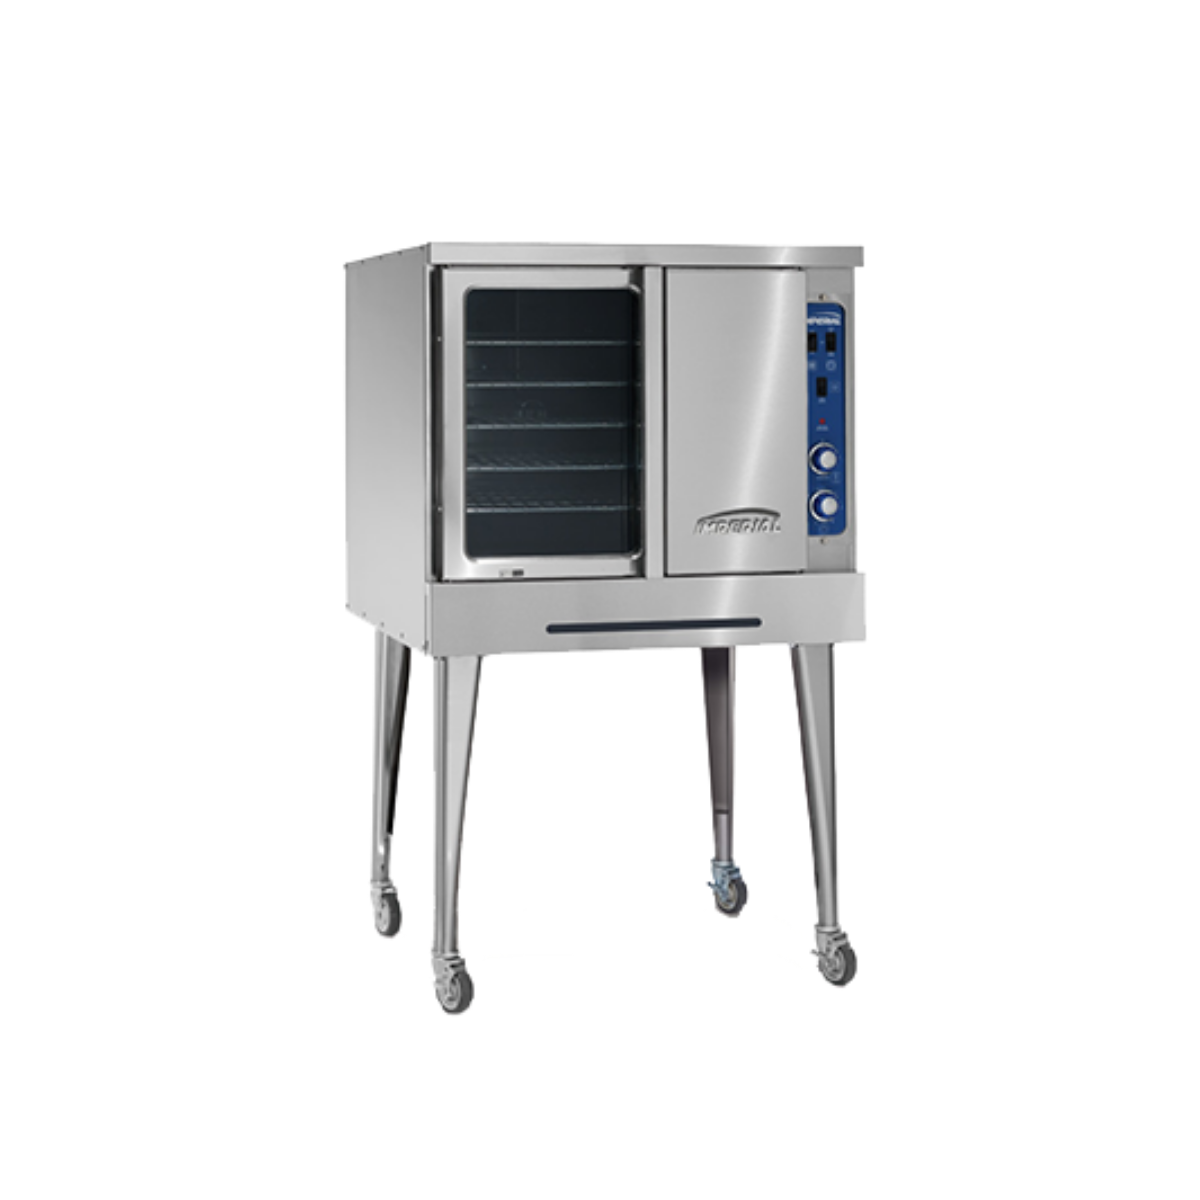 Imperial ICVE-1 Electric Convection Oven